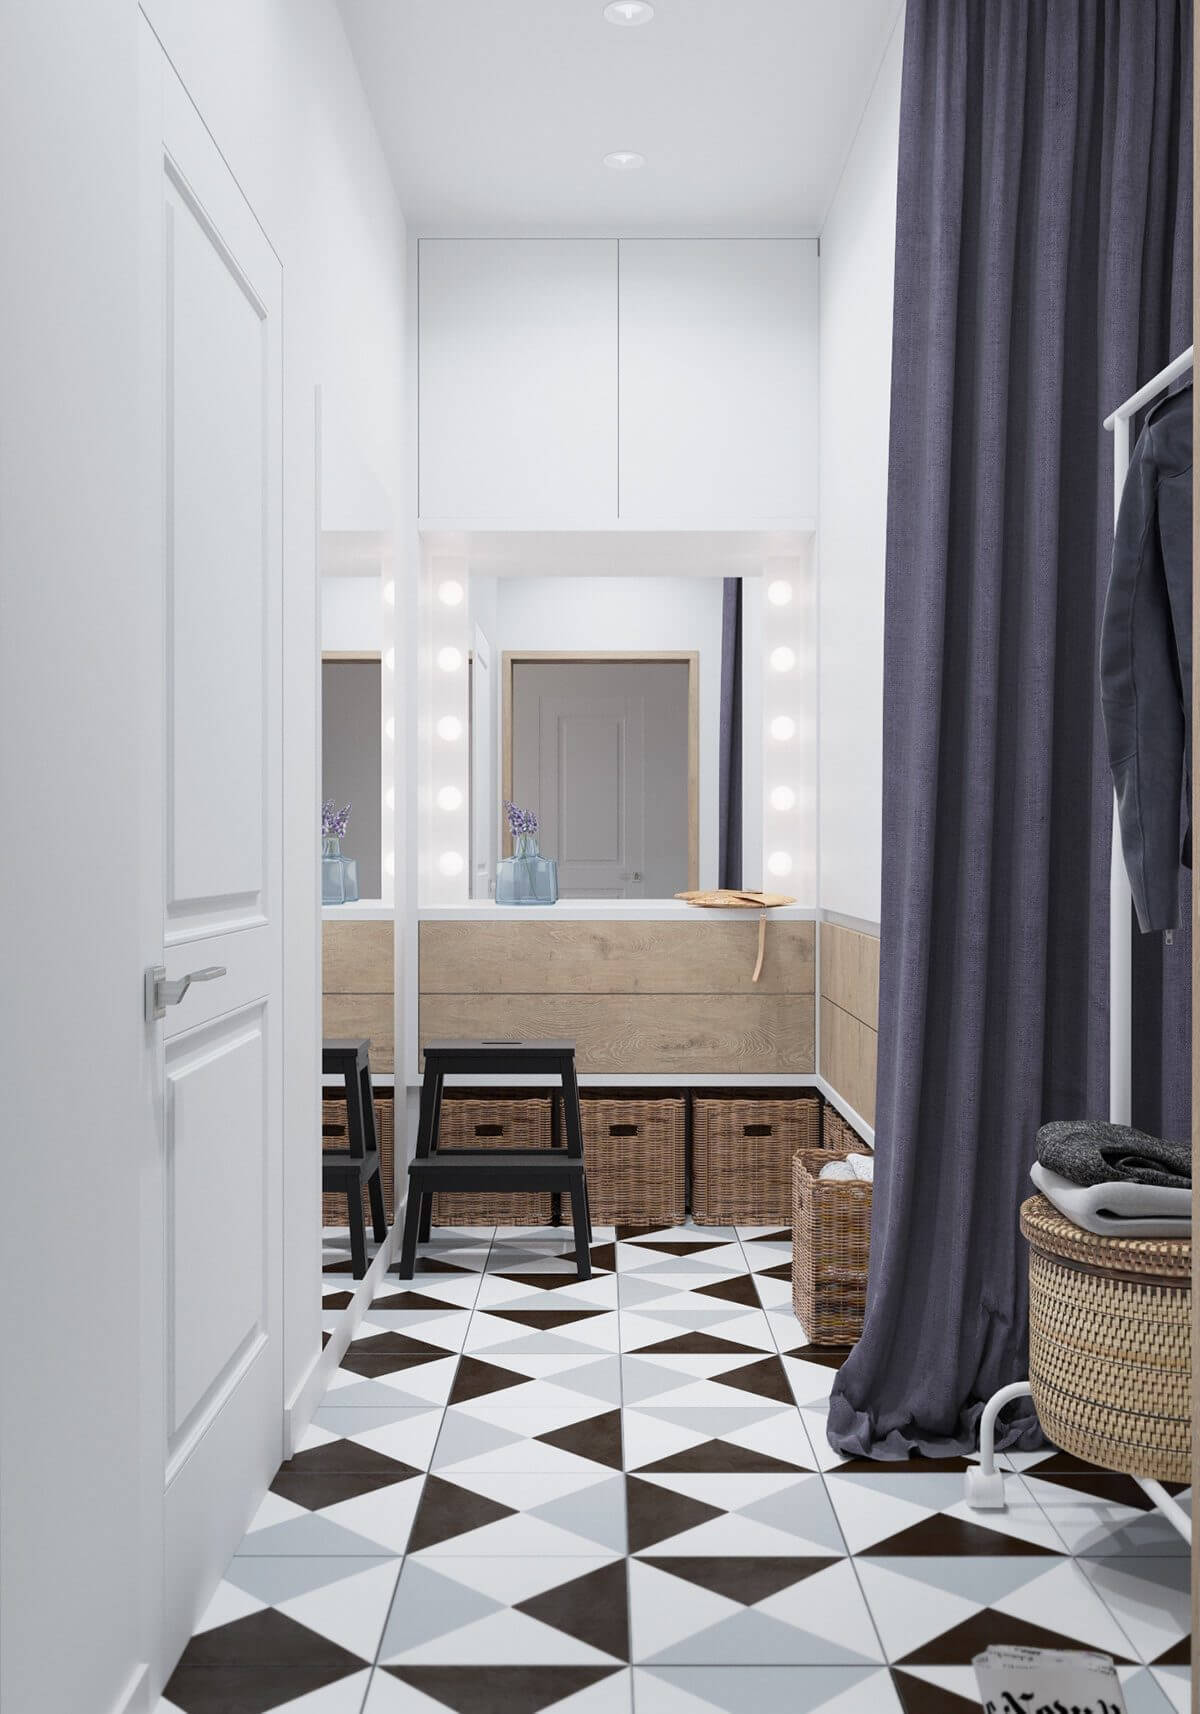 extra-space-unique-tiles-geometric-laundry